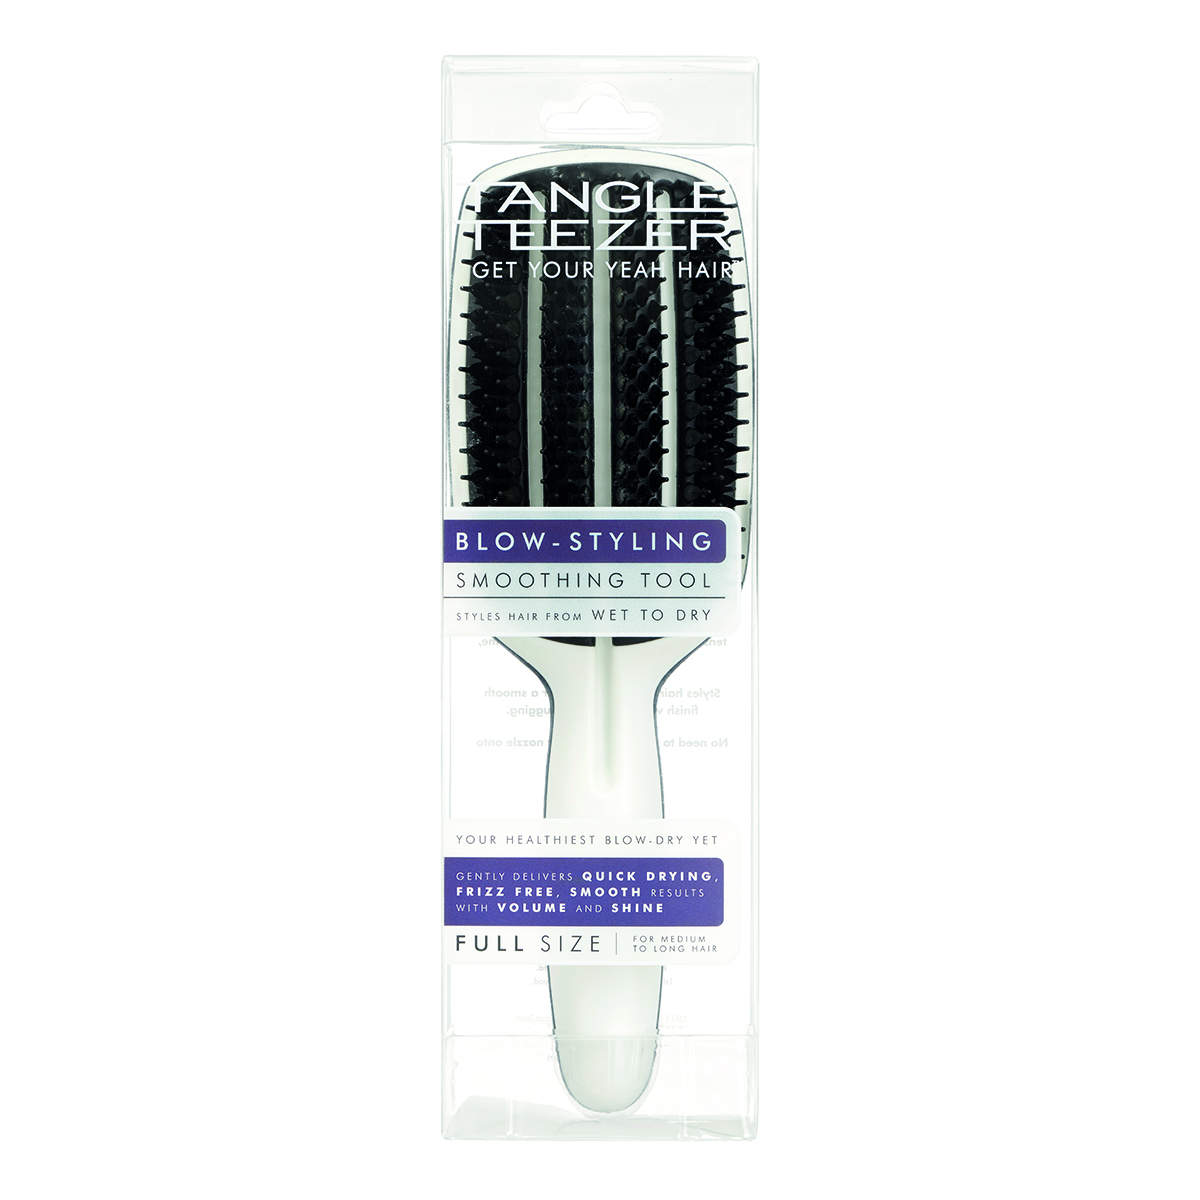 Расческа для укладки феном Tangle Teezer Blow-Styling Smoothing Tool Full Size